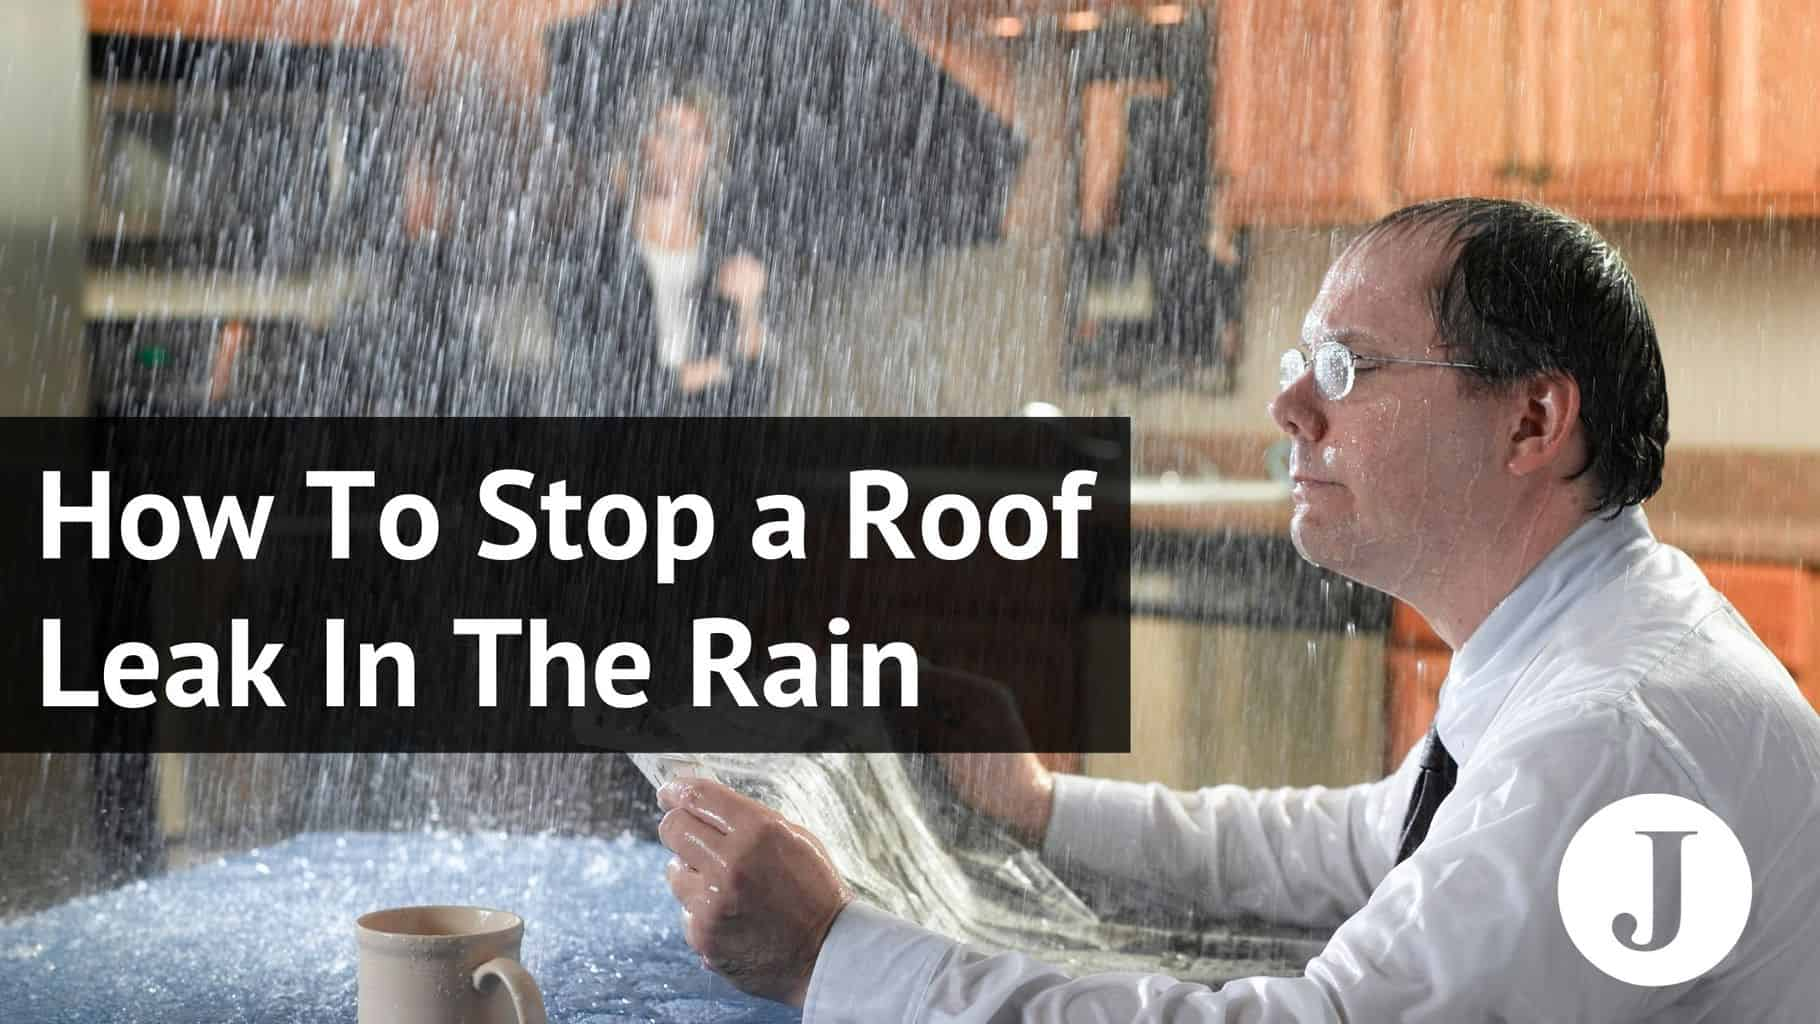 how to stop a roof leak in the rain